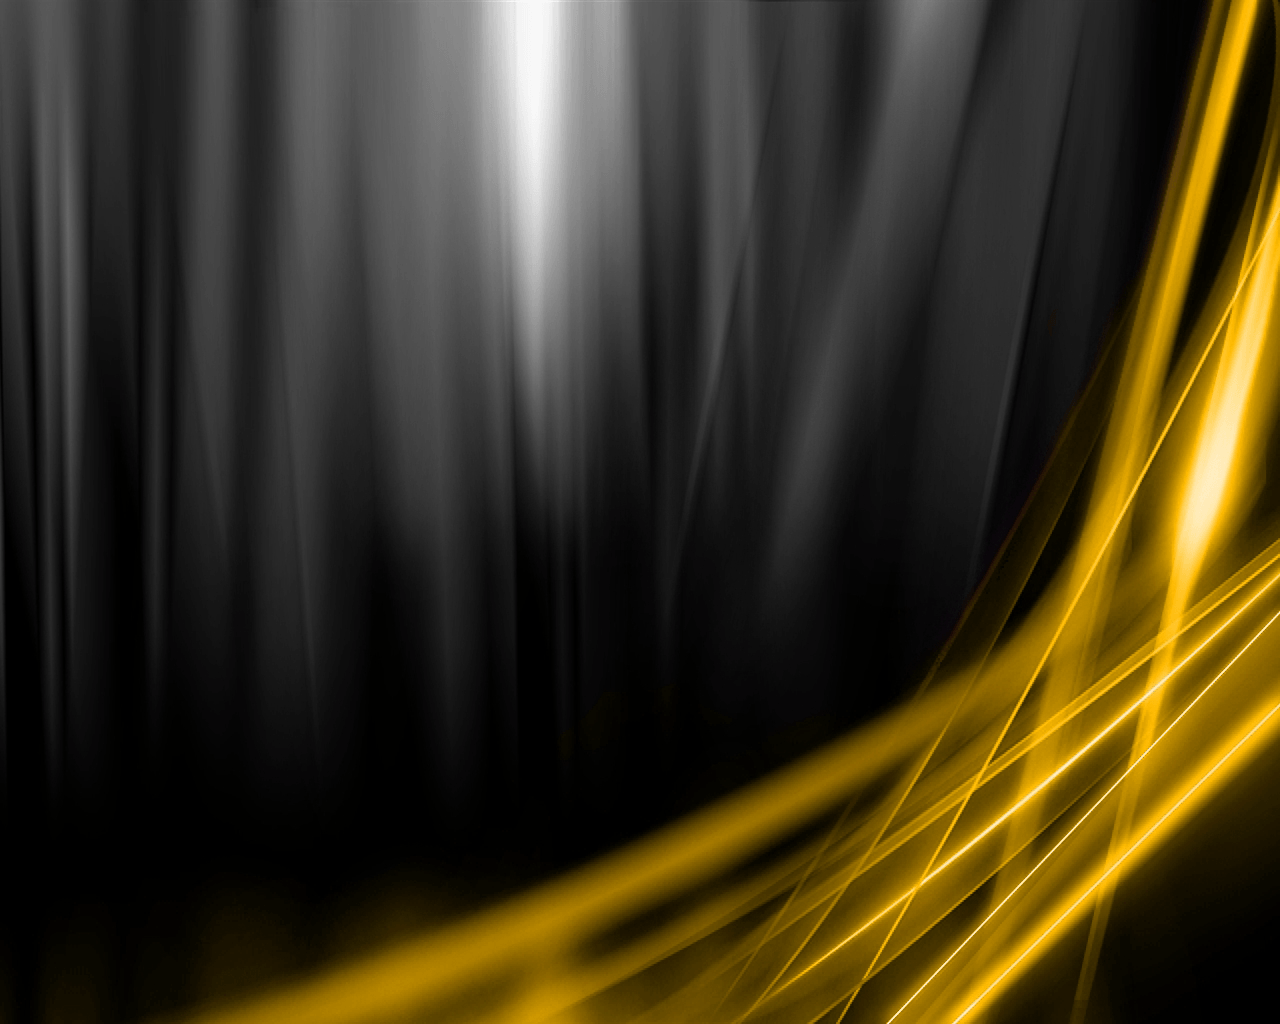 Gold And Black Backgrounds  Wallpaper Cave